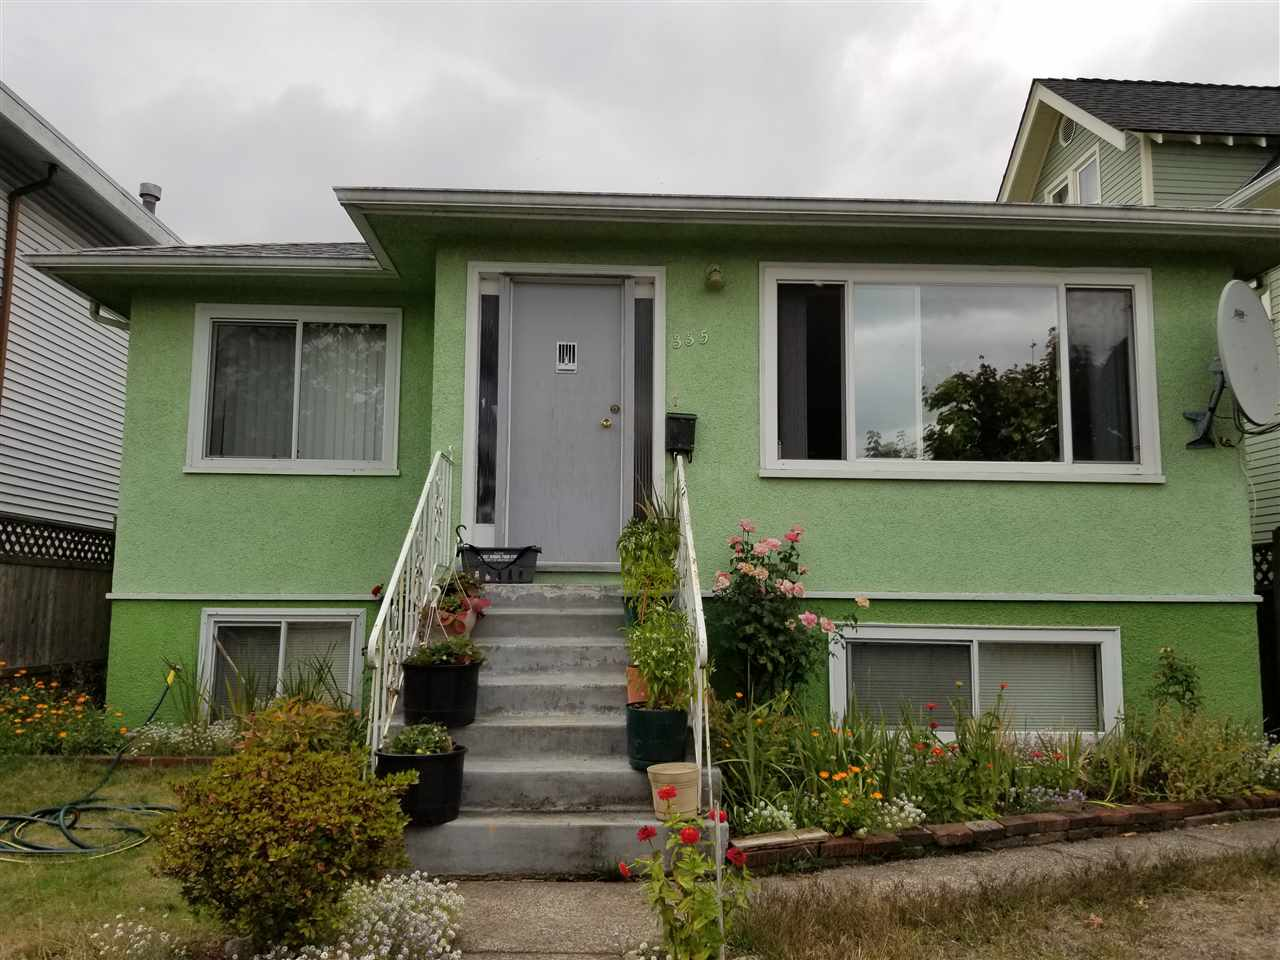 Excellent central South Vancouver location. Hold now with solid home w/ 3 bdrms up & 3 bdrms down and build your dream home later. South-facing, flat, square lot with a detached garage and back lane. Quiet neighbourhood with lots of new houses and close to school, bus, shopping and parks.